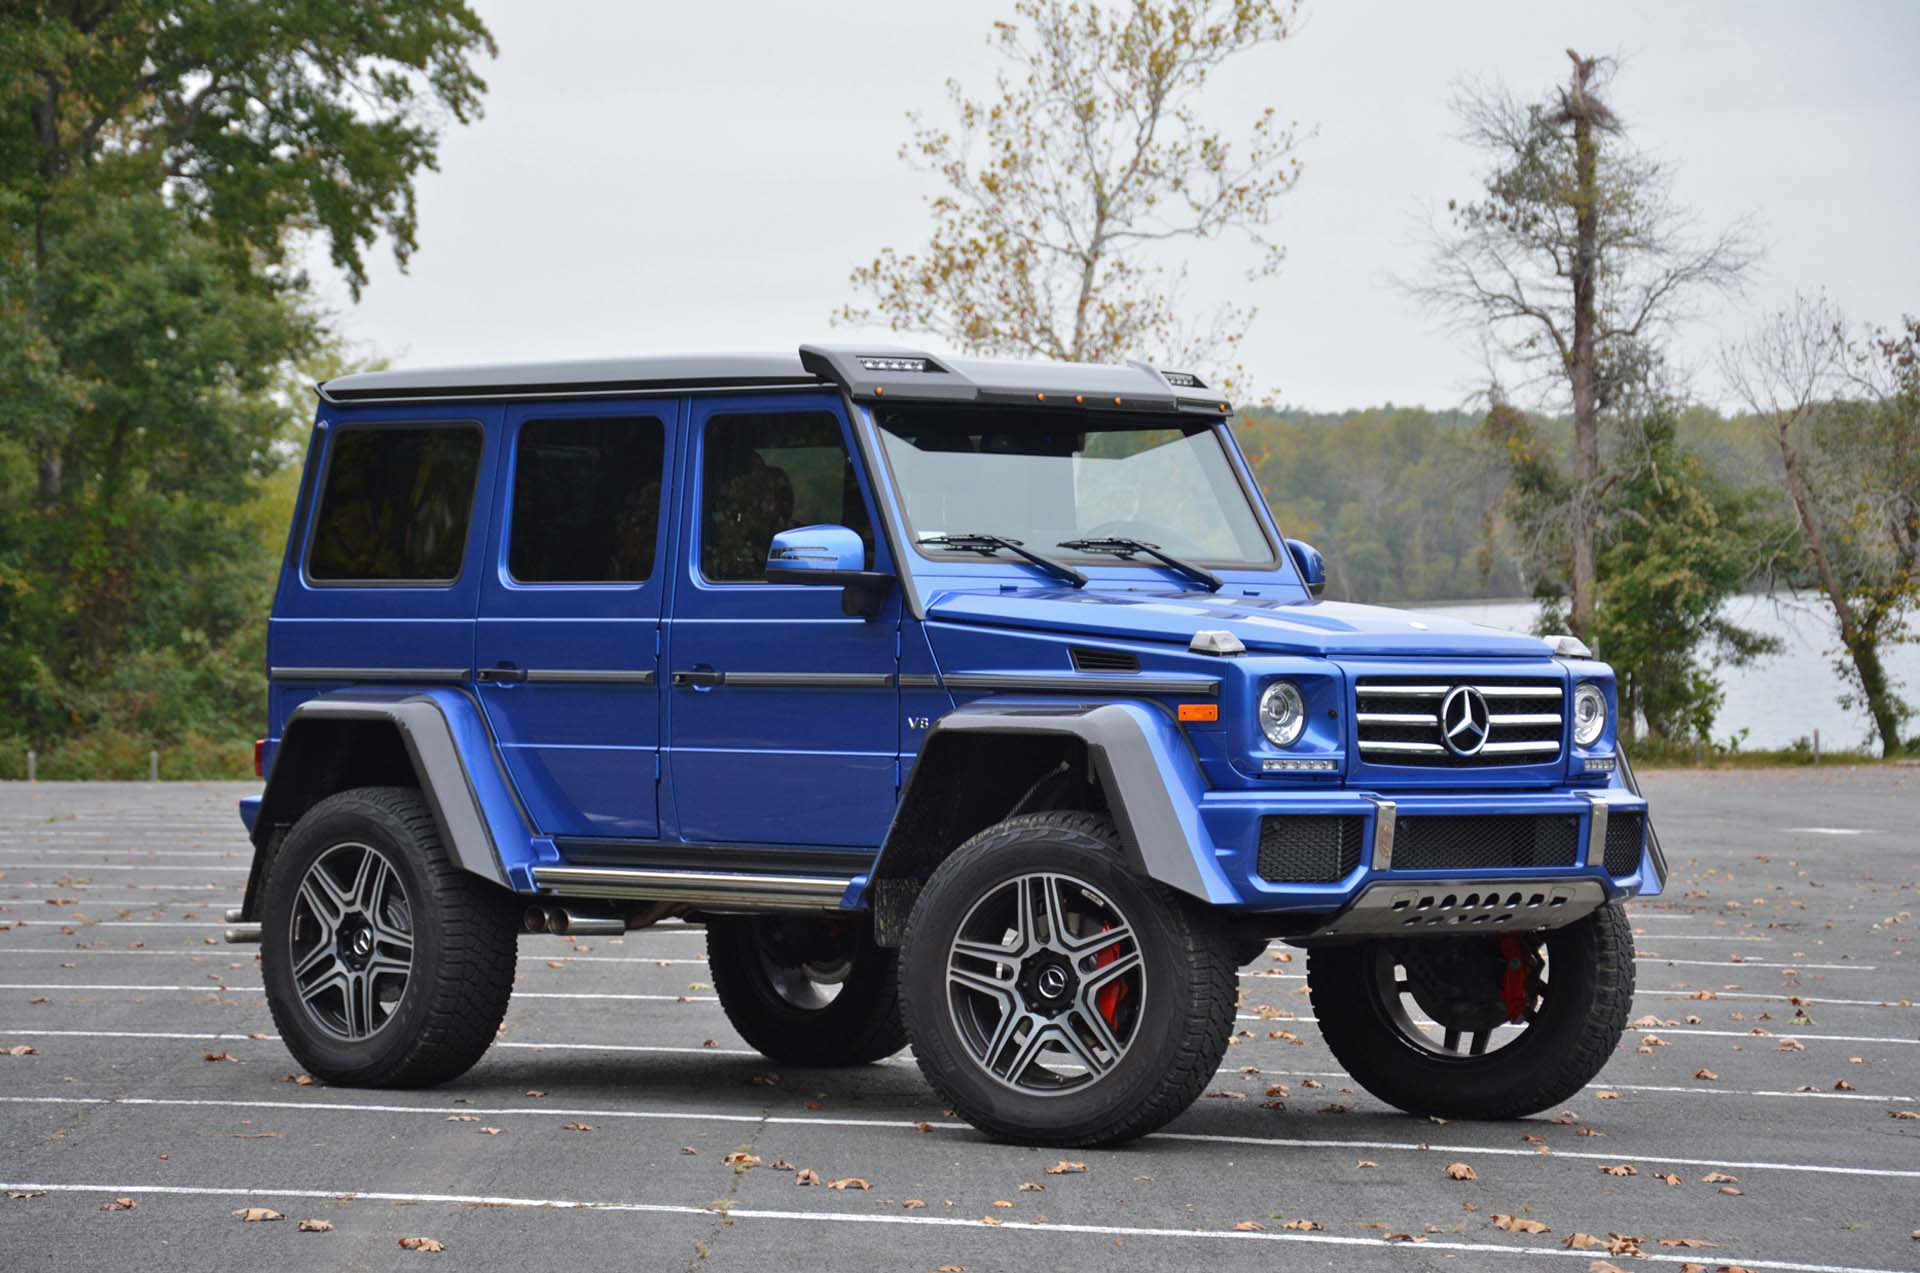 Mercedes benz g550 4x4 squared review top tax bracket bruiser for Mercedes benz 4x4 squared